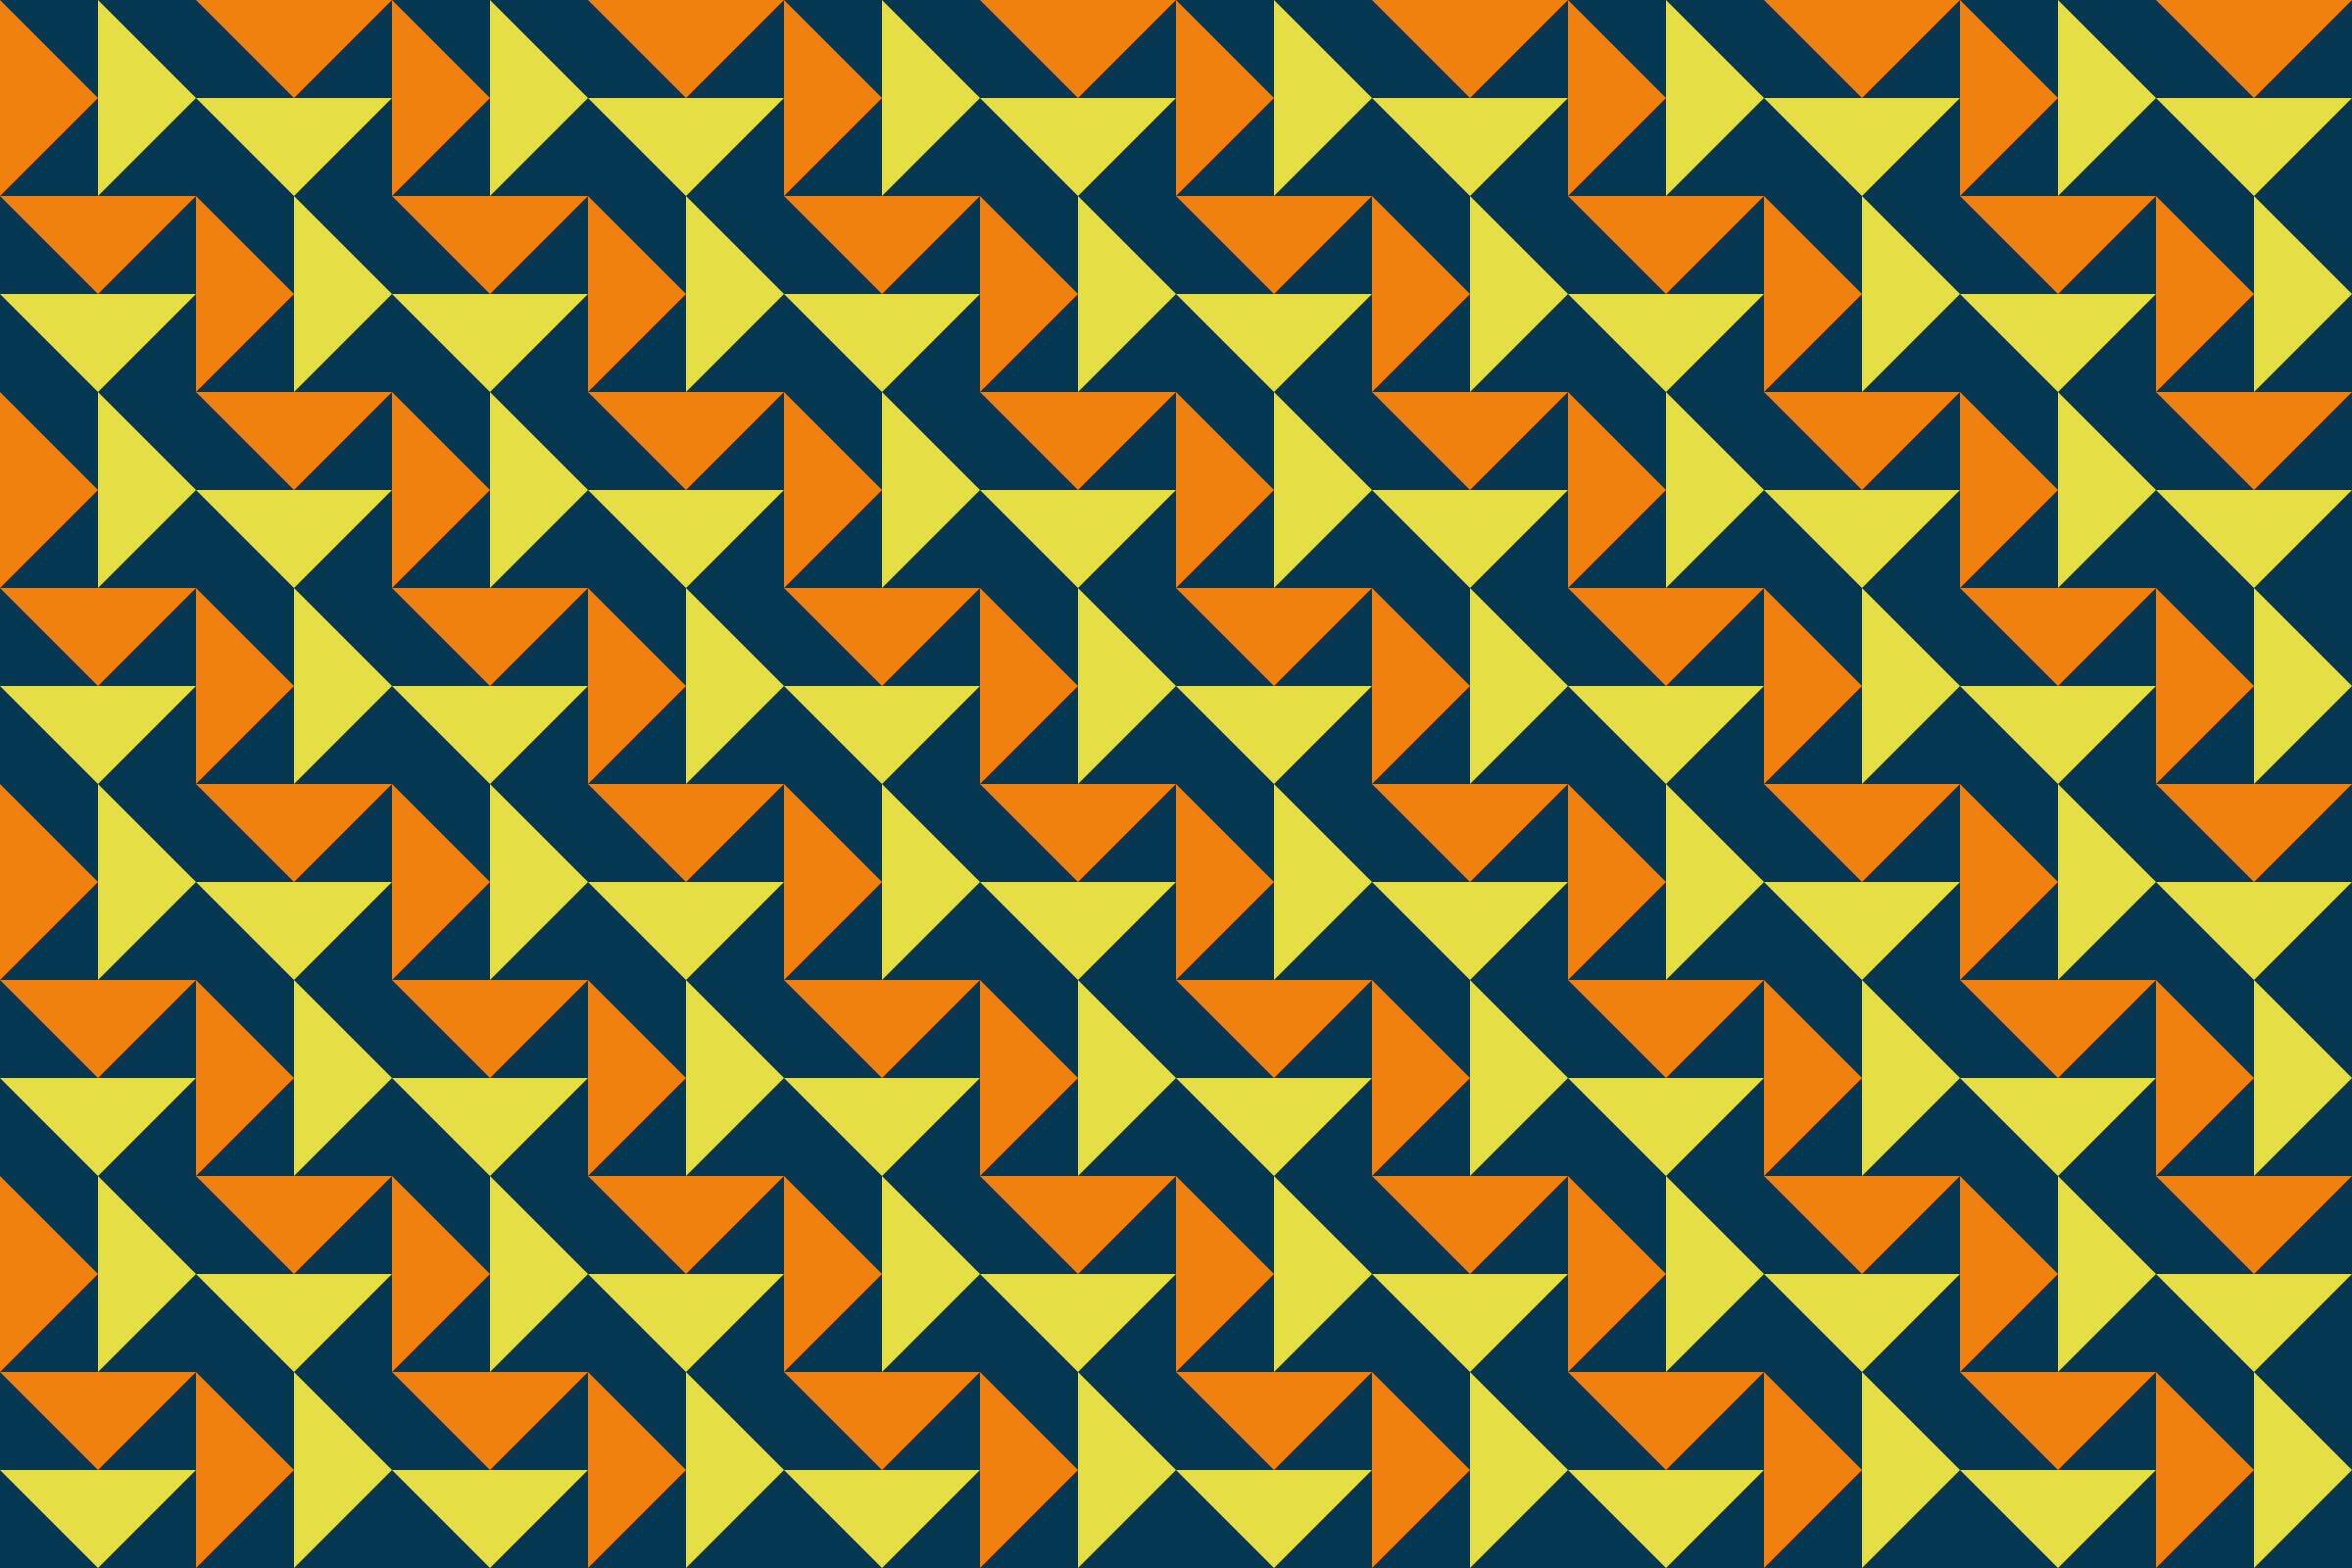 Triangles pattern by Firkin